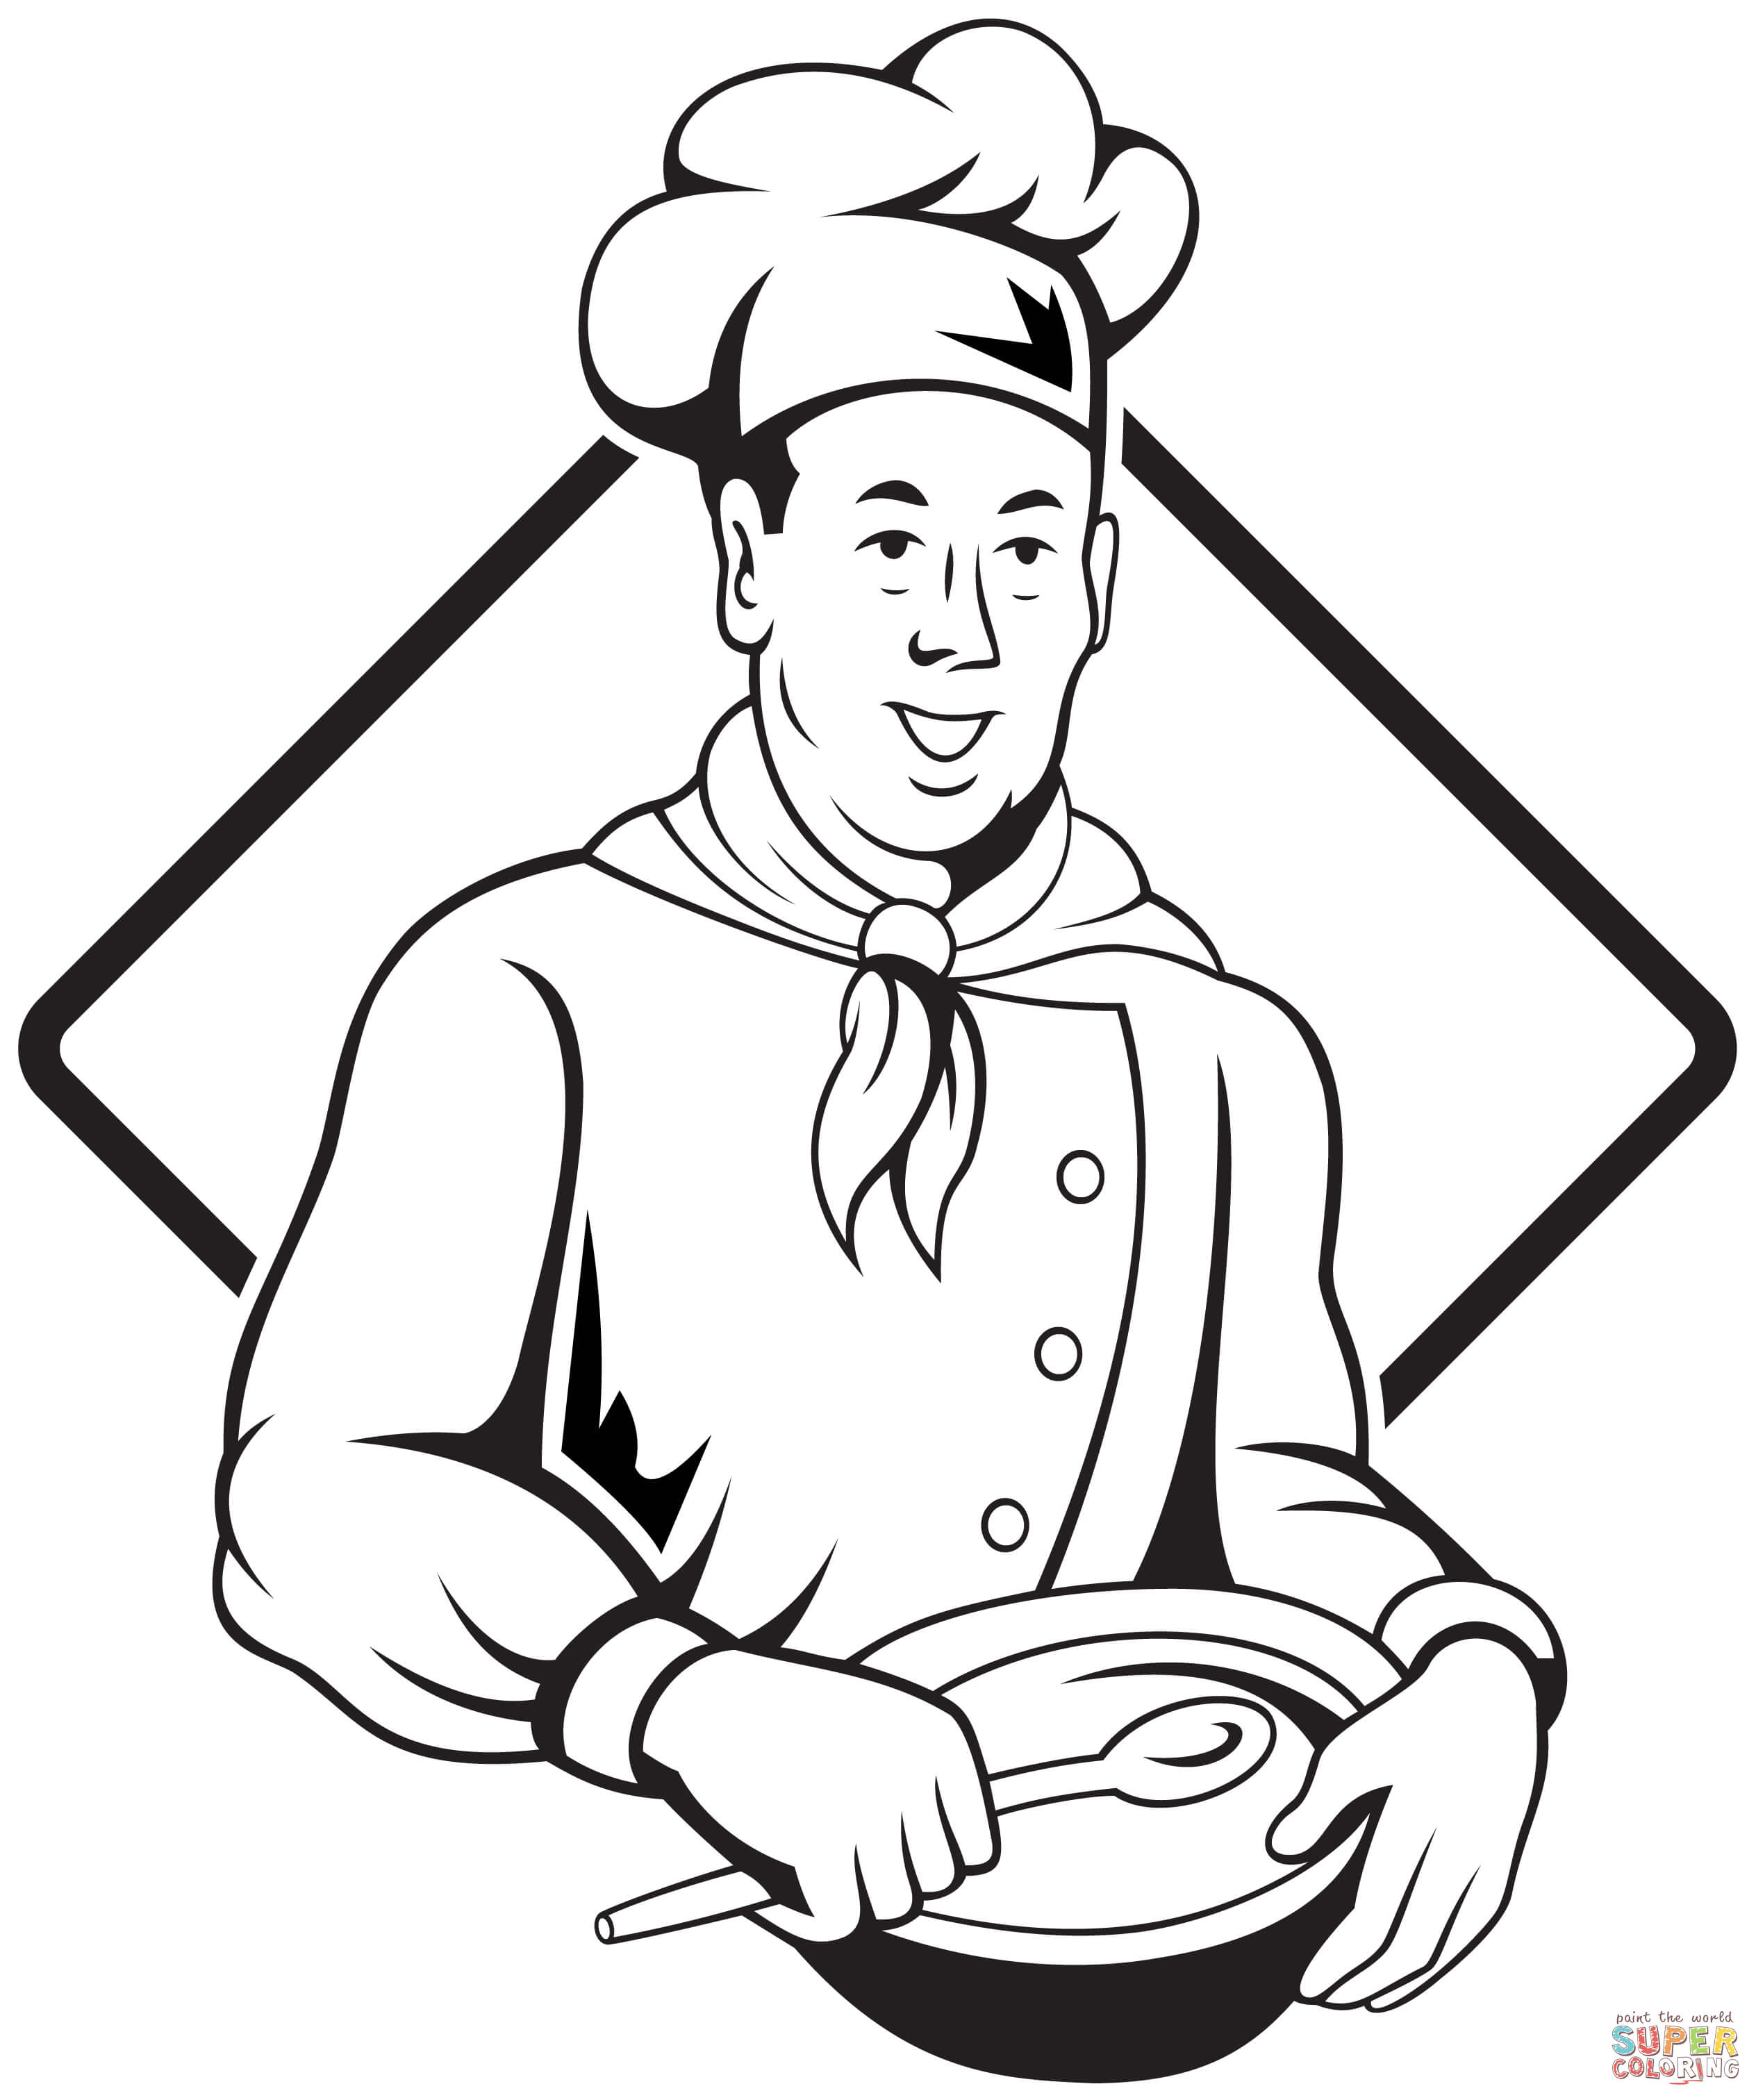 2528x3024 Chef Holding Spoon And Bowl Coloring Page Free Printable